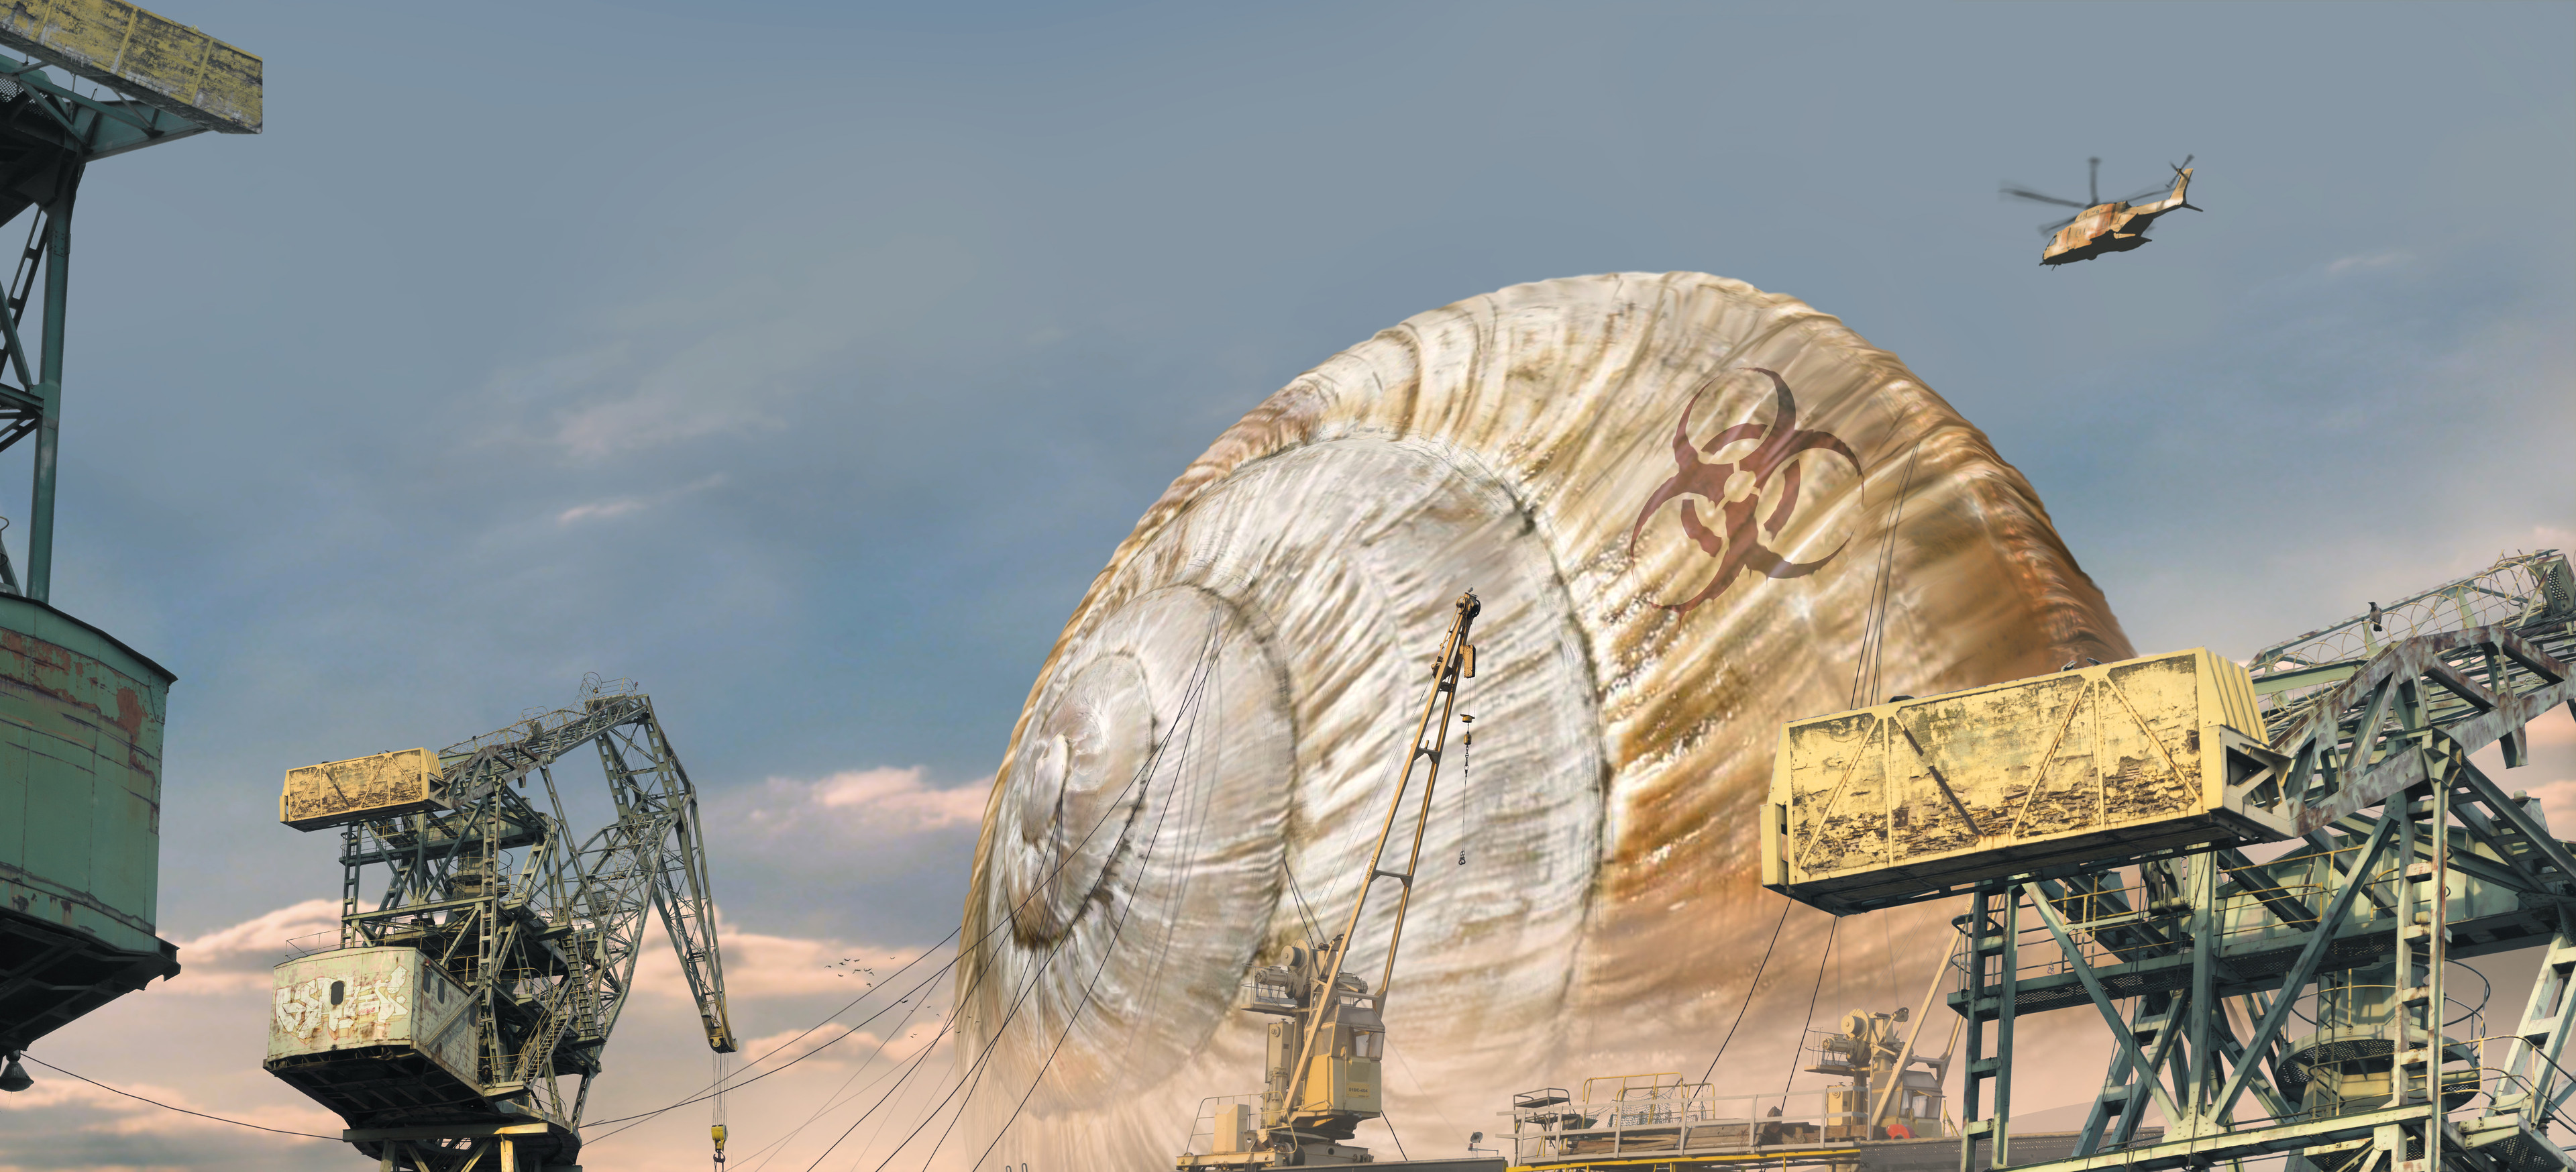 Giant snail shell at the port